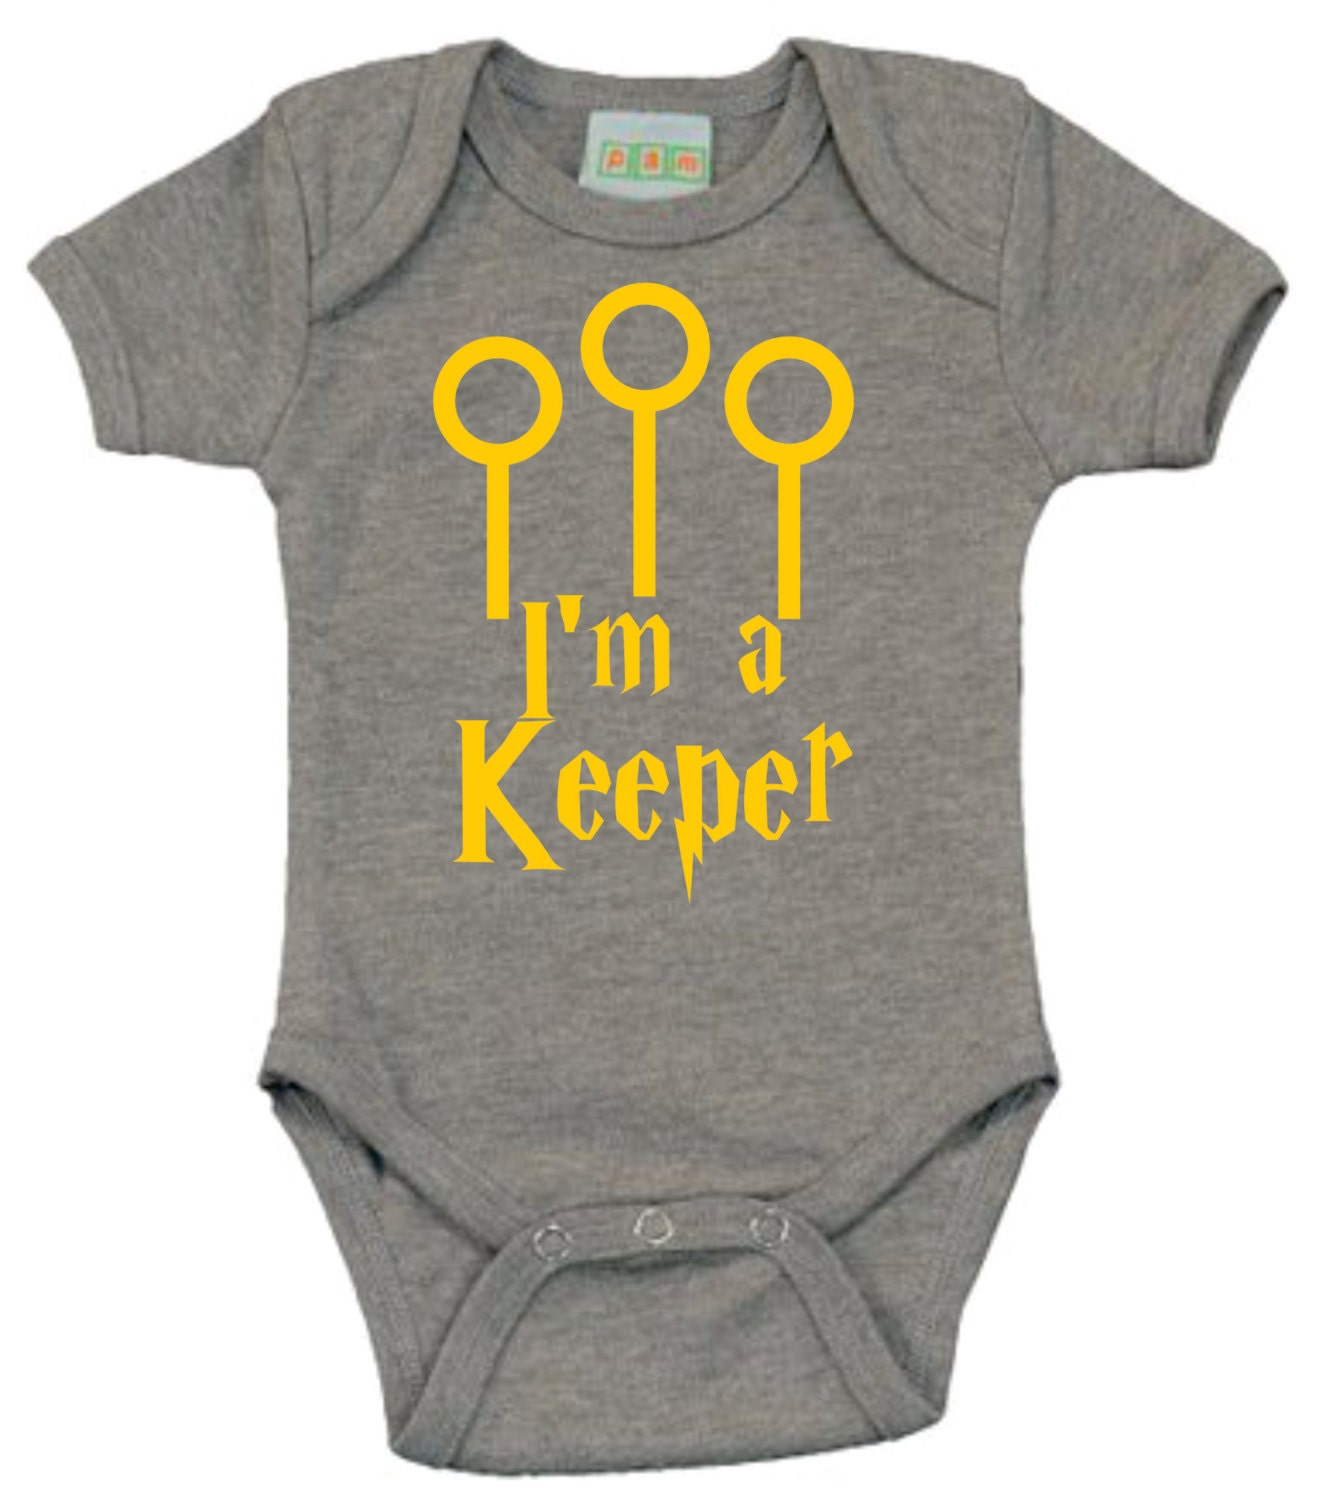 Harry Potter Onesie Harry Potter Baby Clothes I'm a